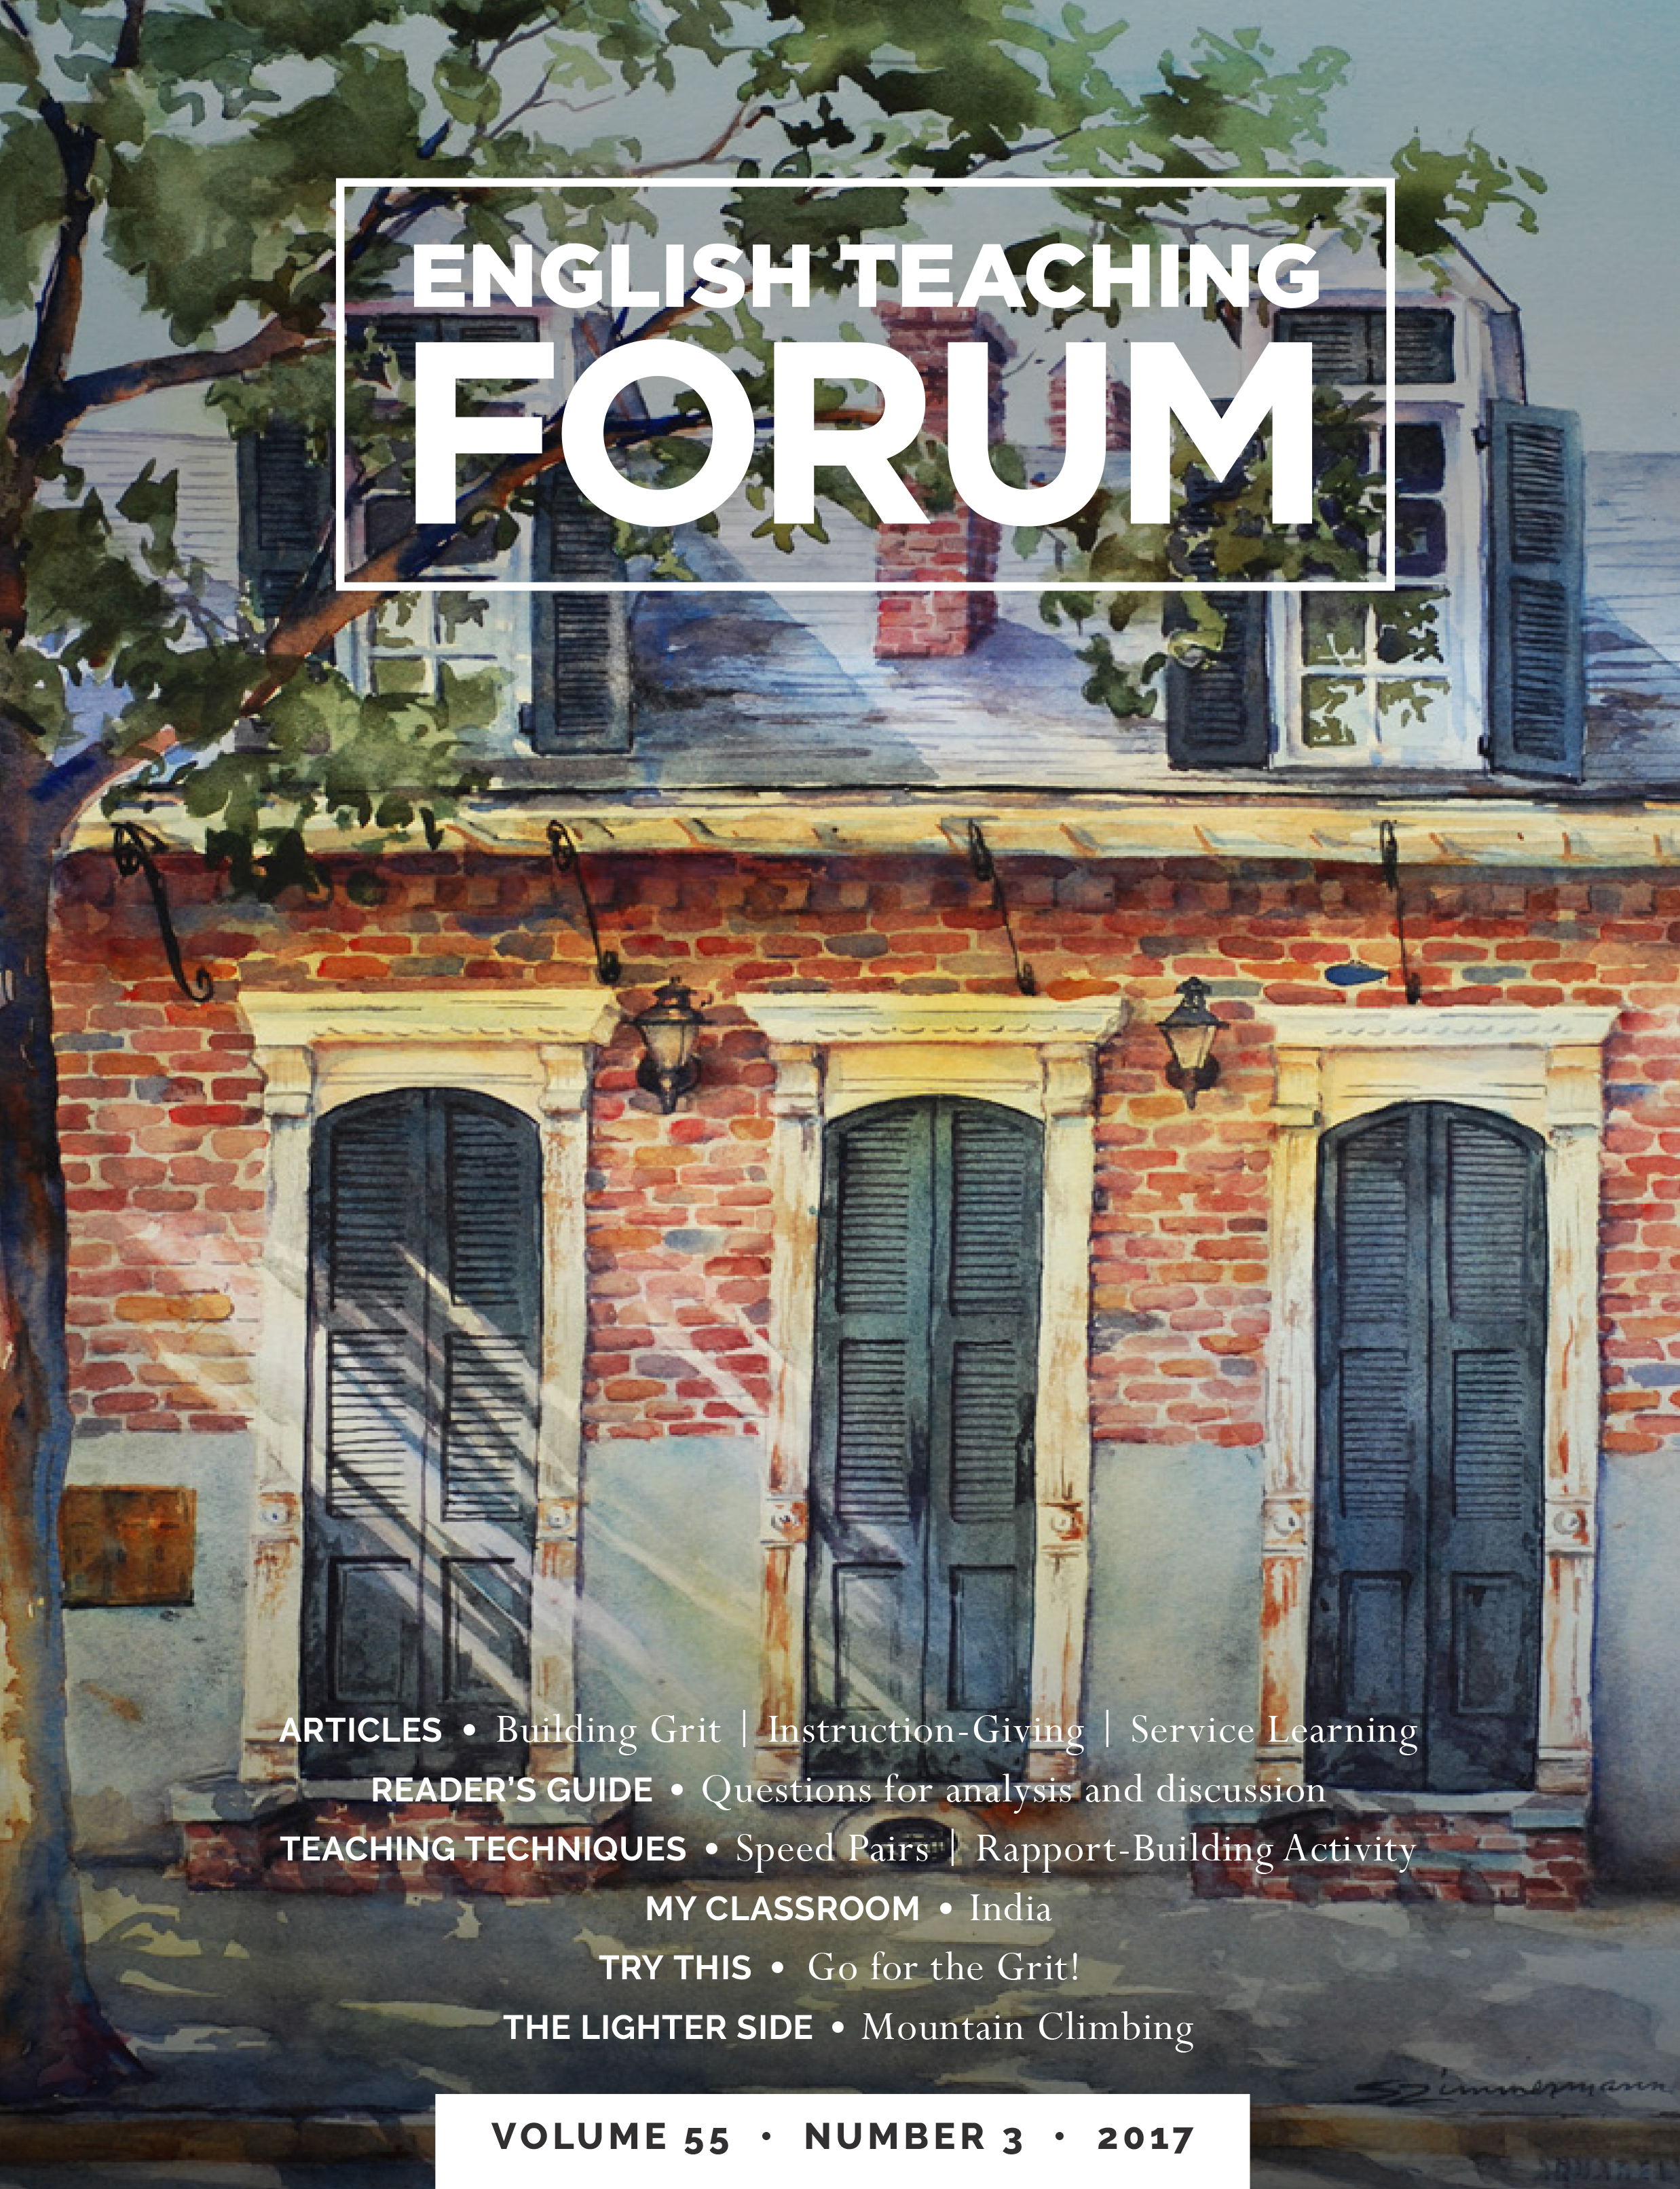 English Teaching Forum 2017, Volume 55, Number 3 | American English